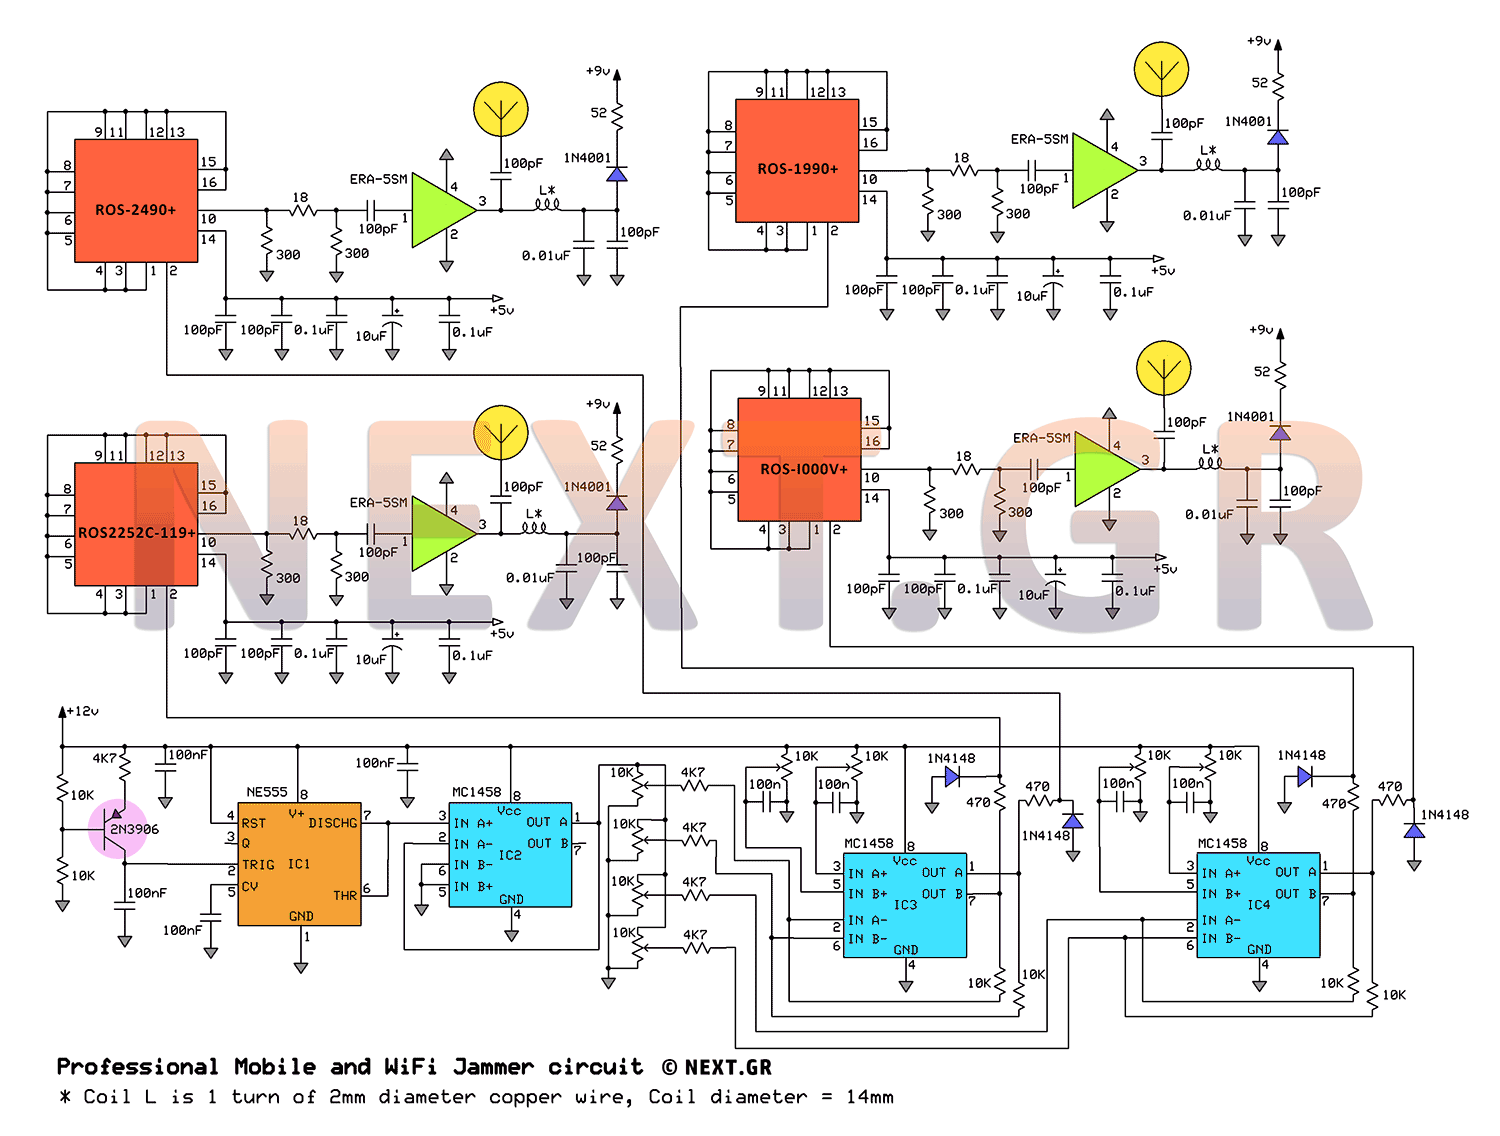 Jammer Circuit Rf Circuits High And Low Frequency Noise Generator Schematic Professional Mobile 1g 2g 3g 4g Wifi